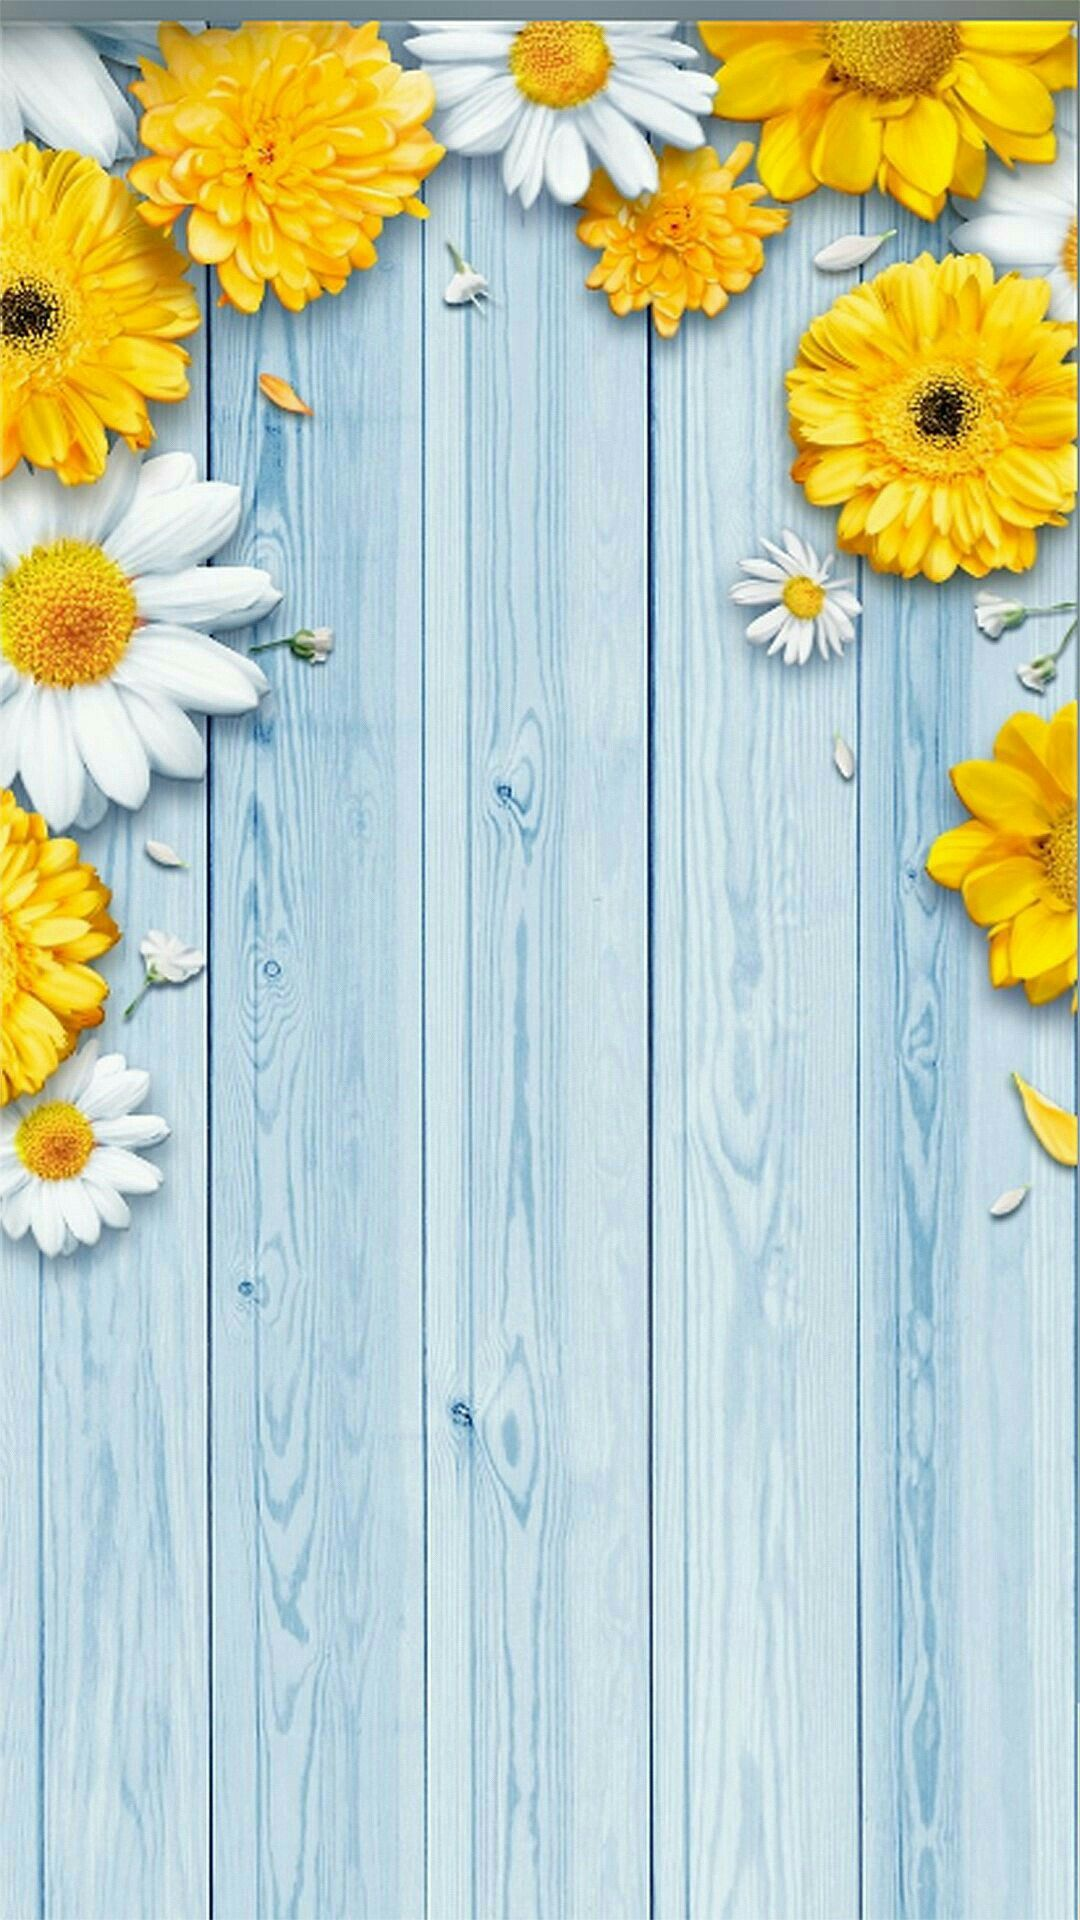 Pin by Sepideh_bly on background Spring wallpaper